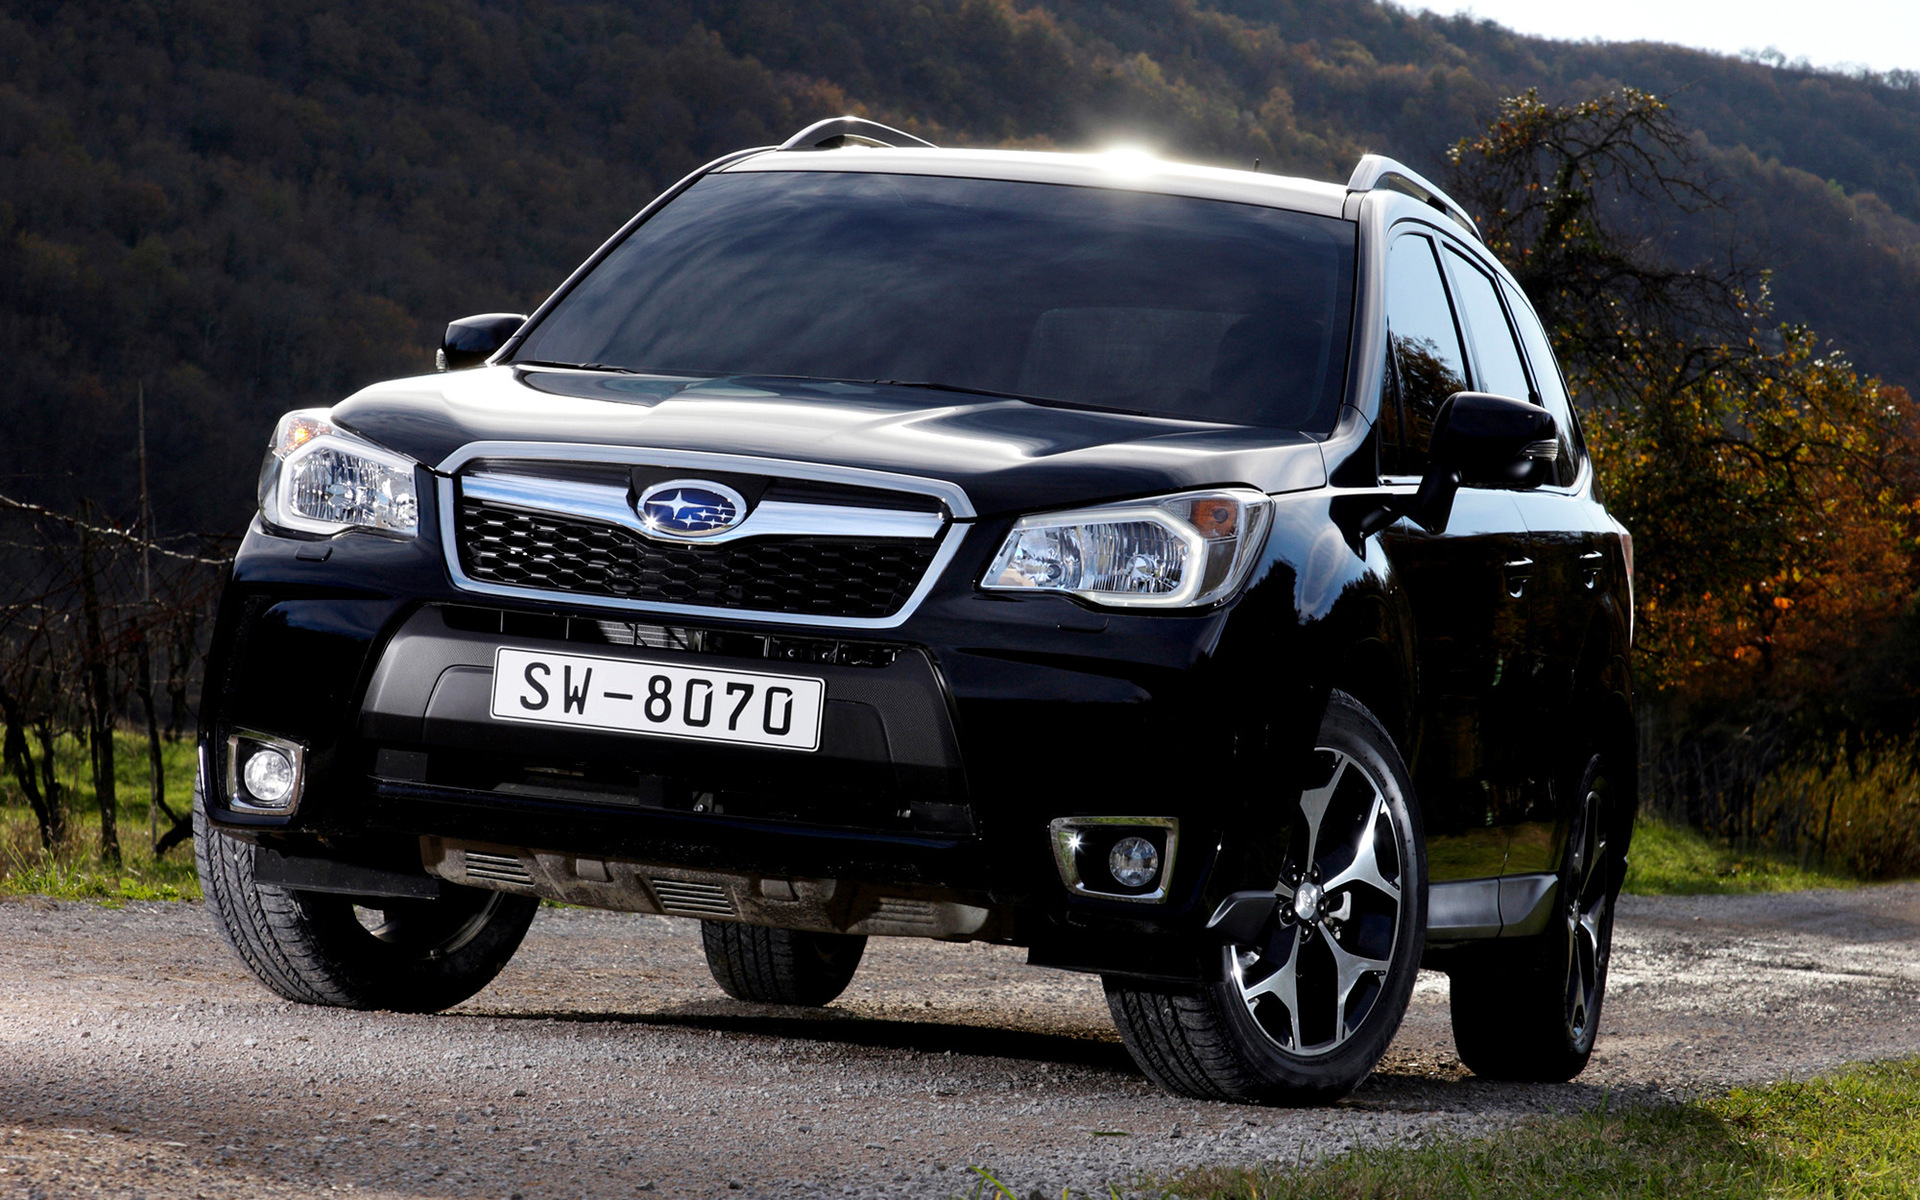 Ed Martin Gmc >> 2012 Subaru Forester 2.0XT - Wallpapers and HD Images ...